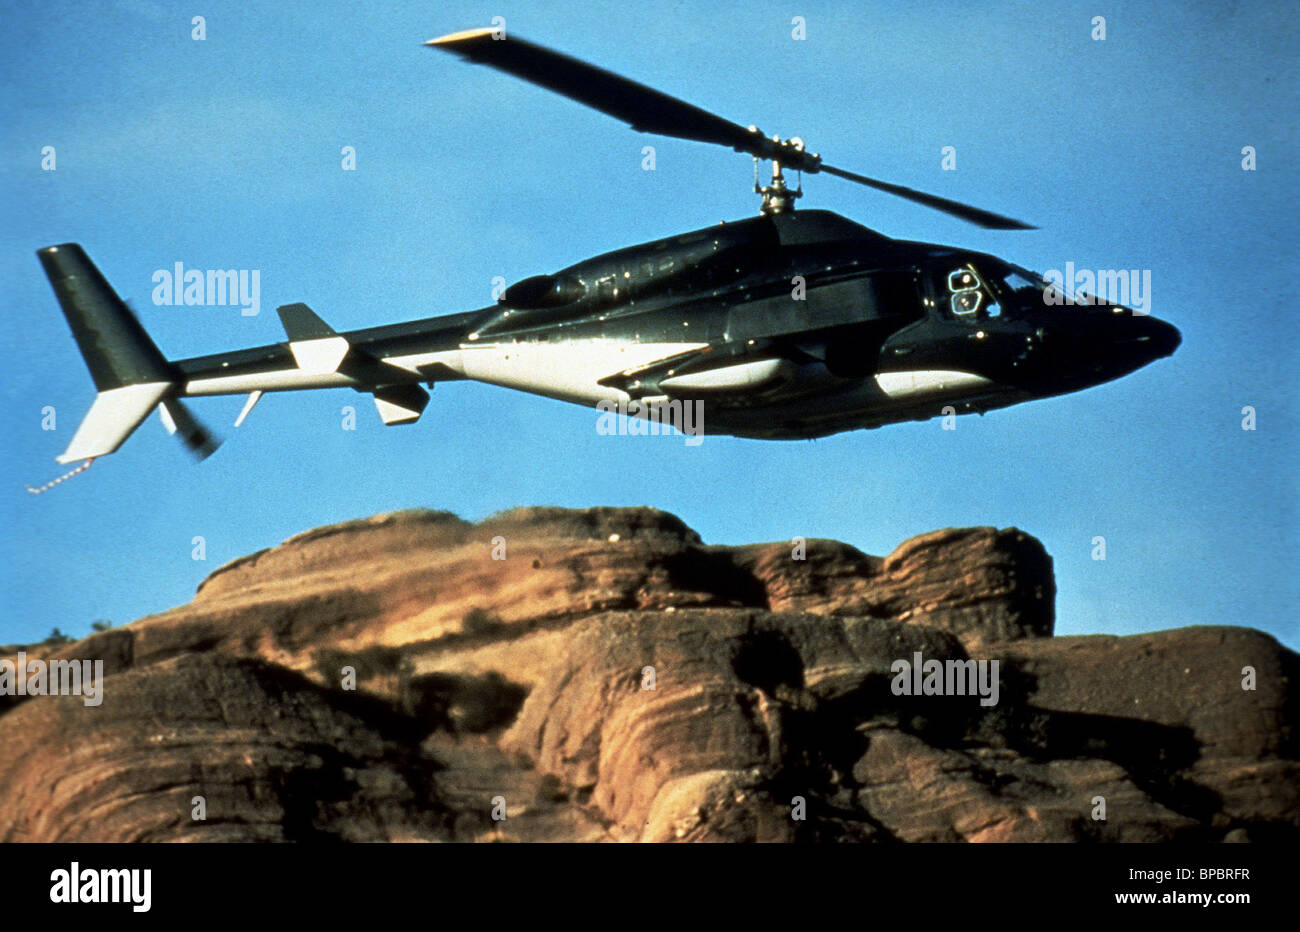 Airwolf Helicopter Tv Show Pictures to Pin on Pinterest ...